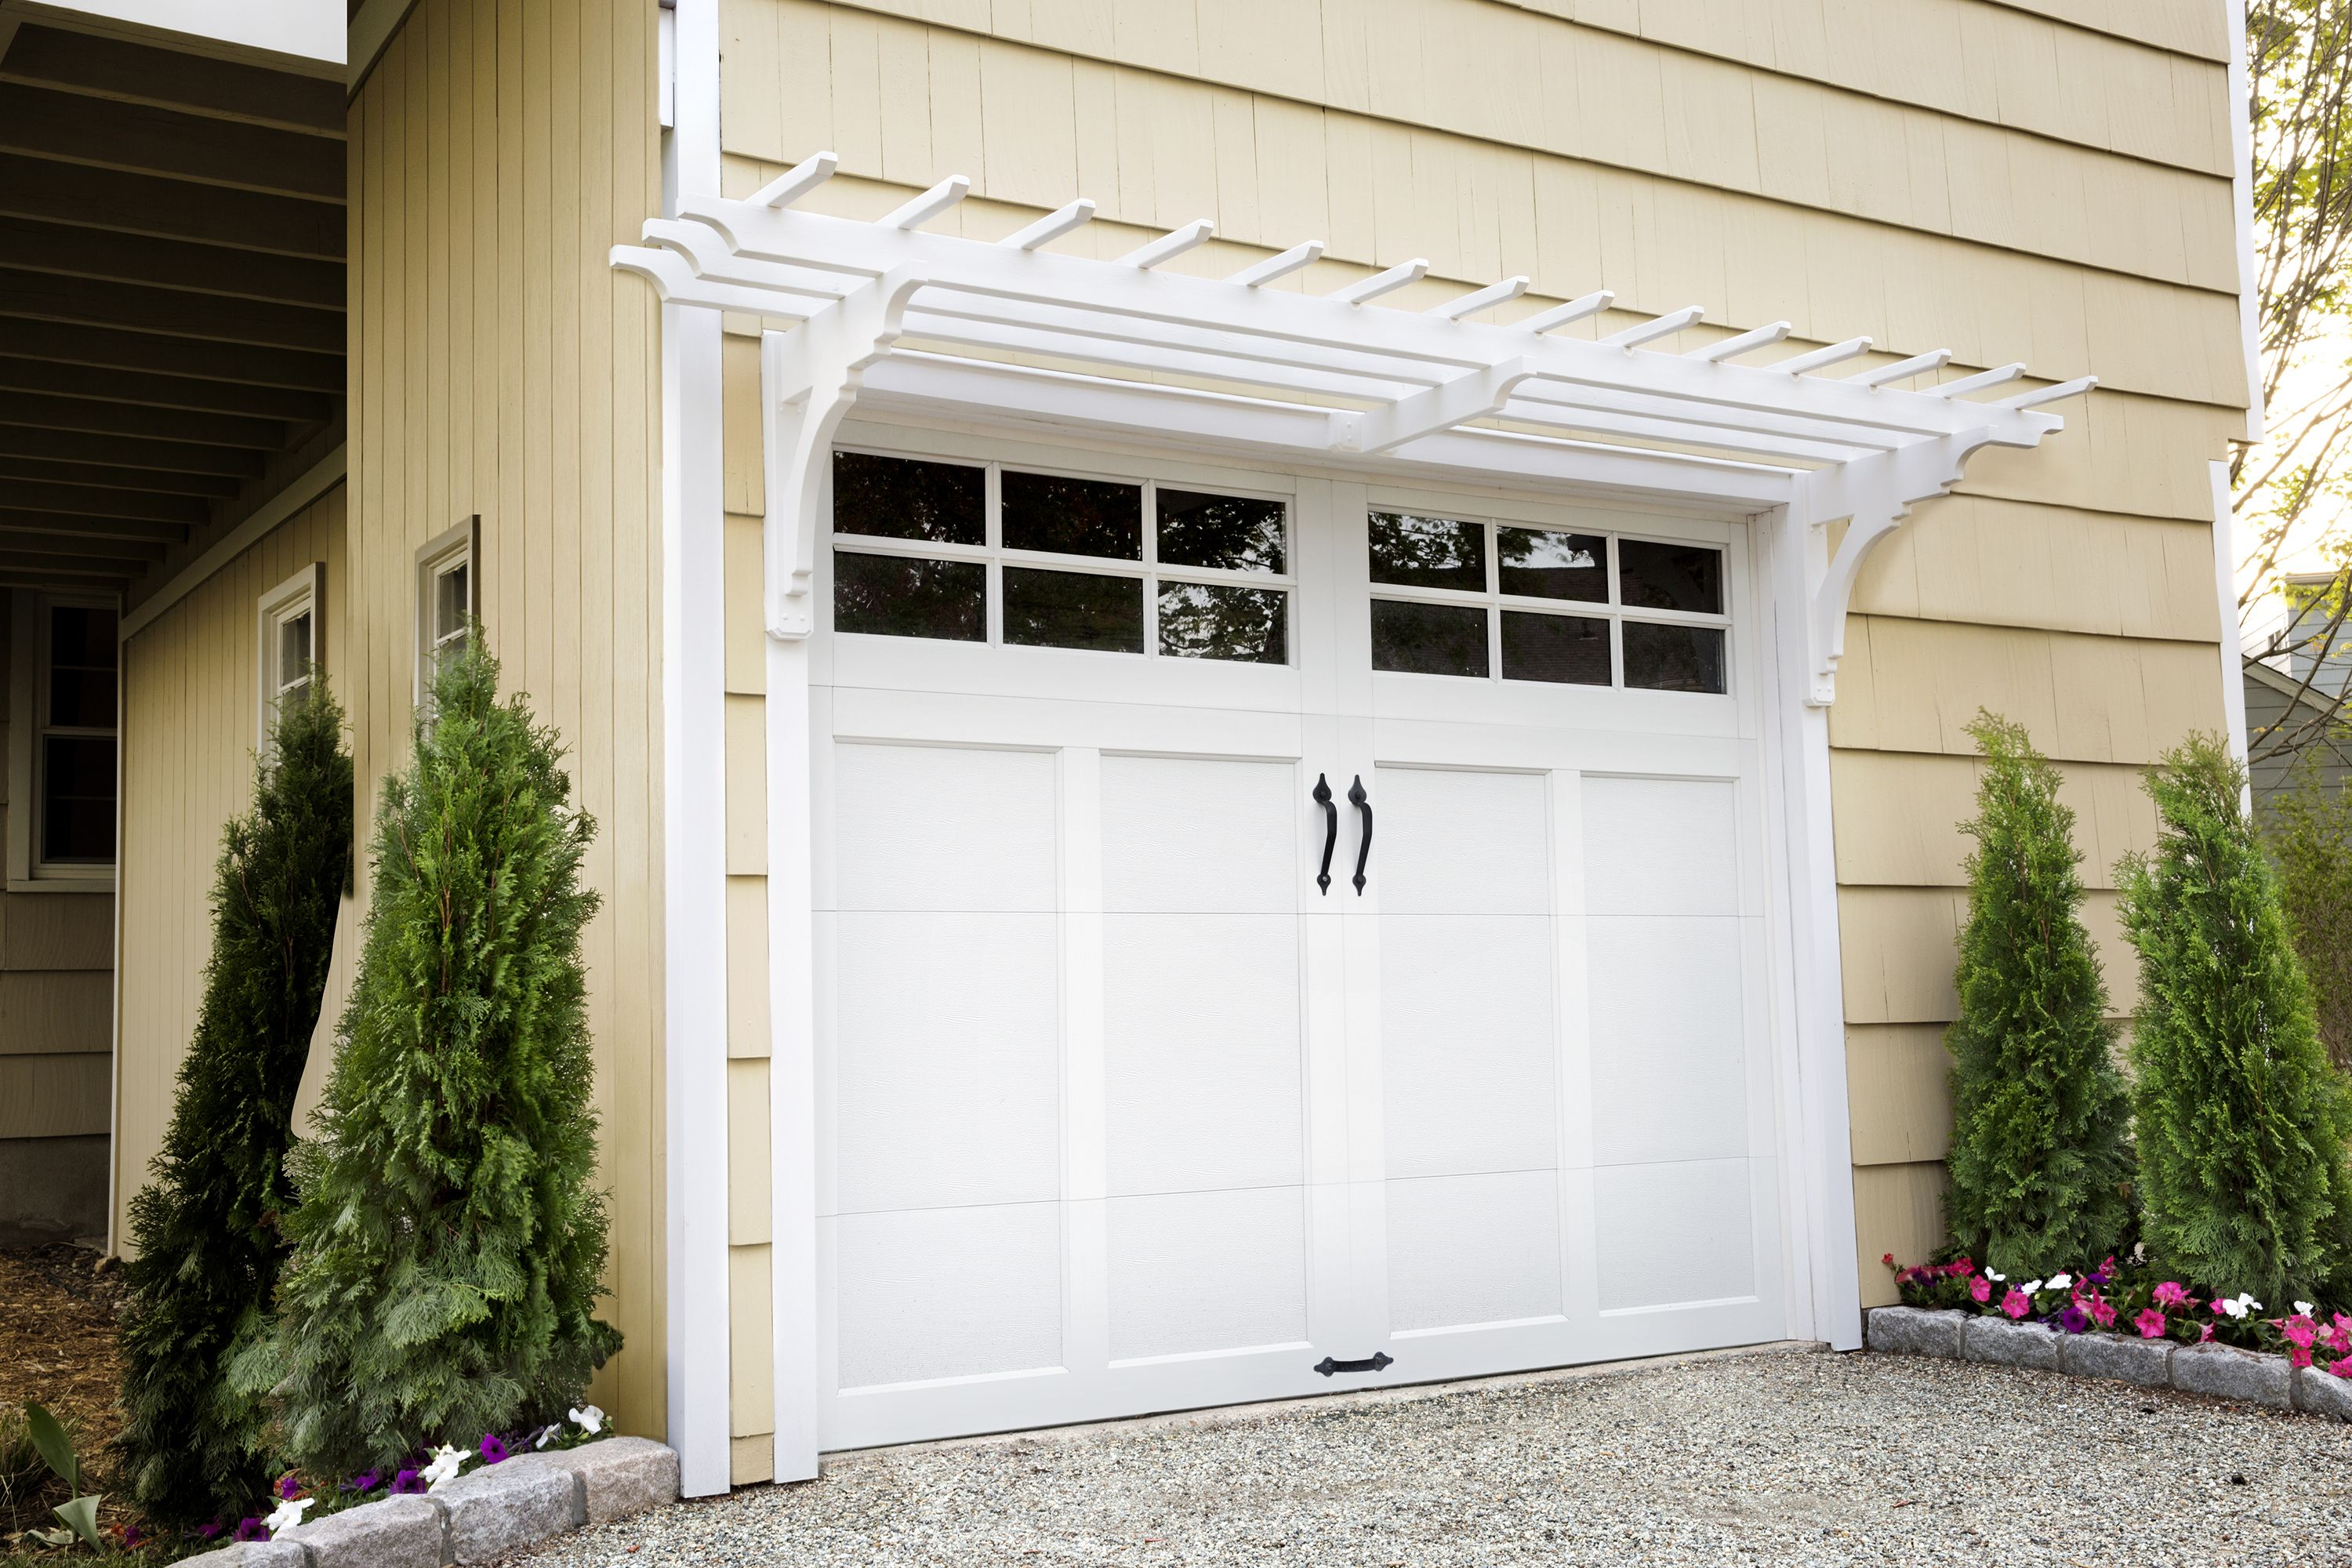 Use Milled Brackets And Pressure Treated Lumber To Create An Elegant Canopy Over Your Garage Door